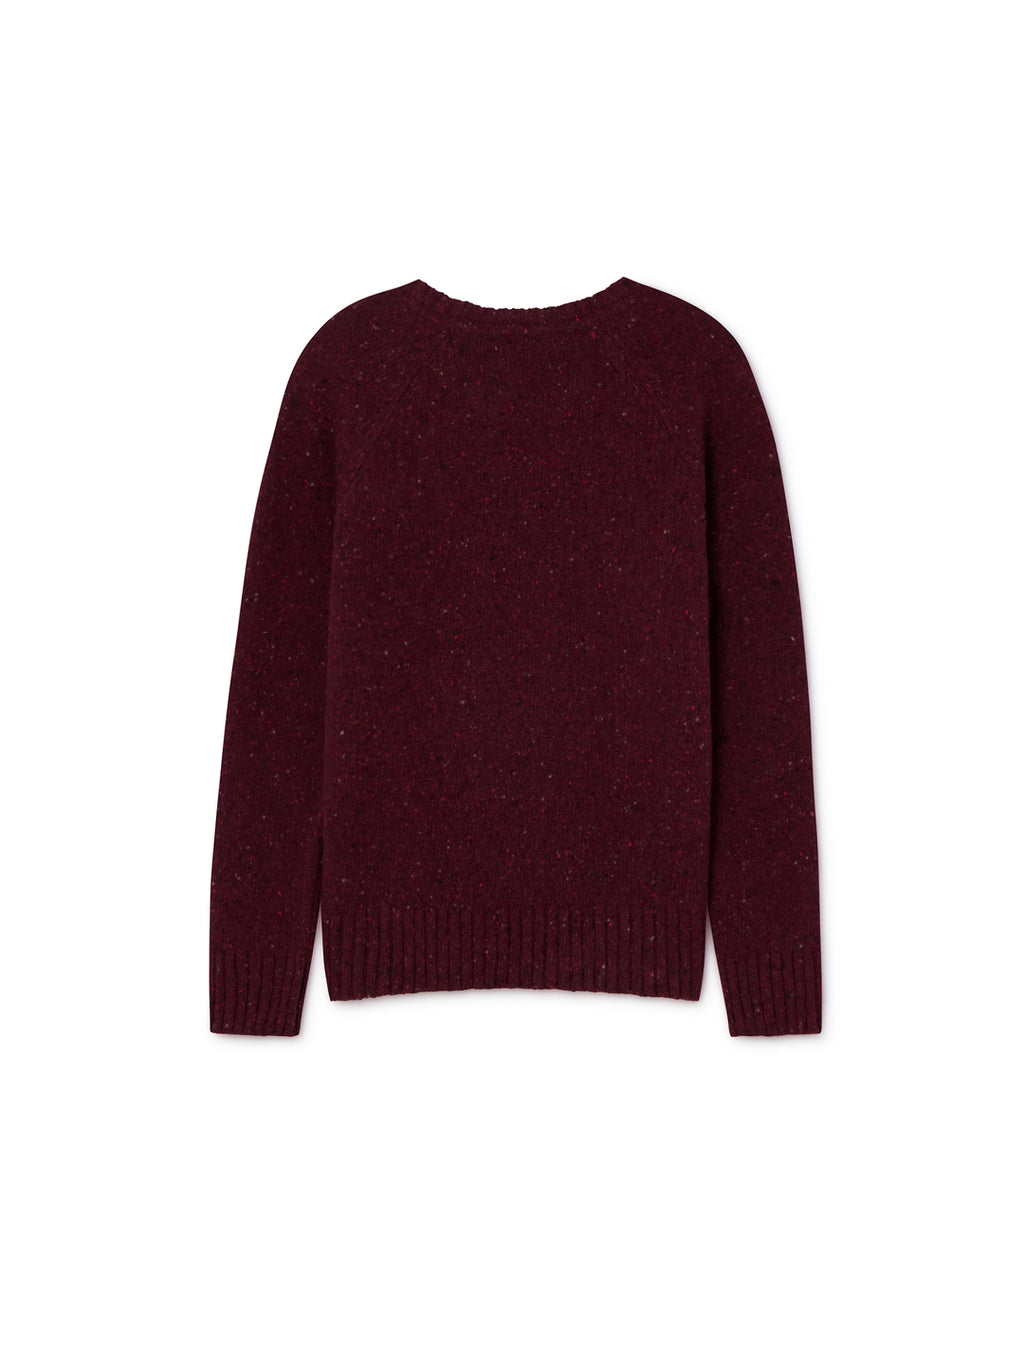 TWOTHIRDS Womens Knit: Agpat - Burgundy back